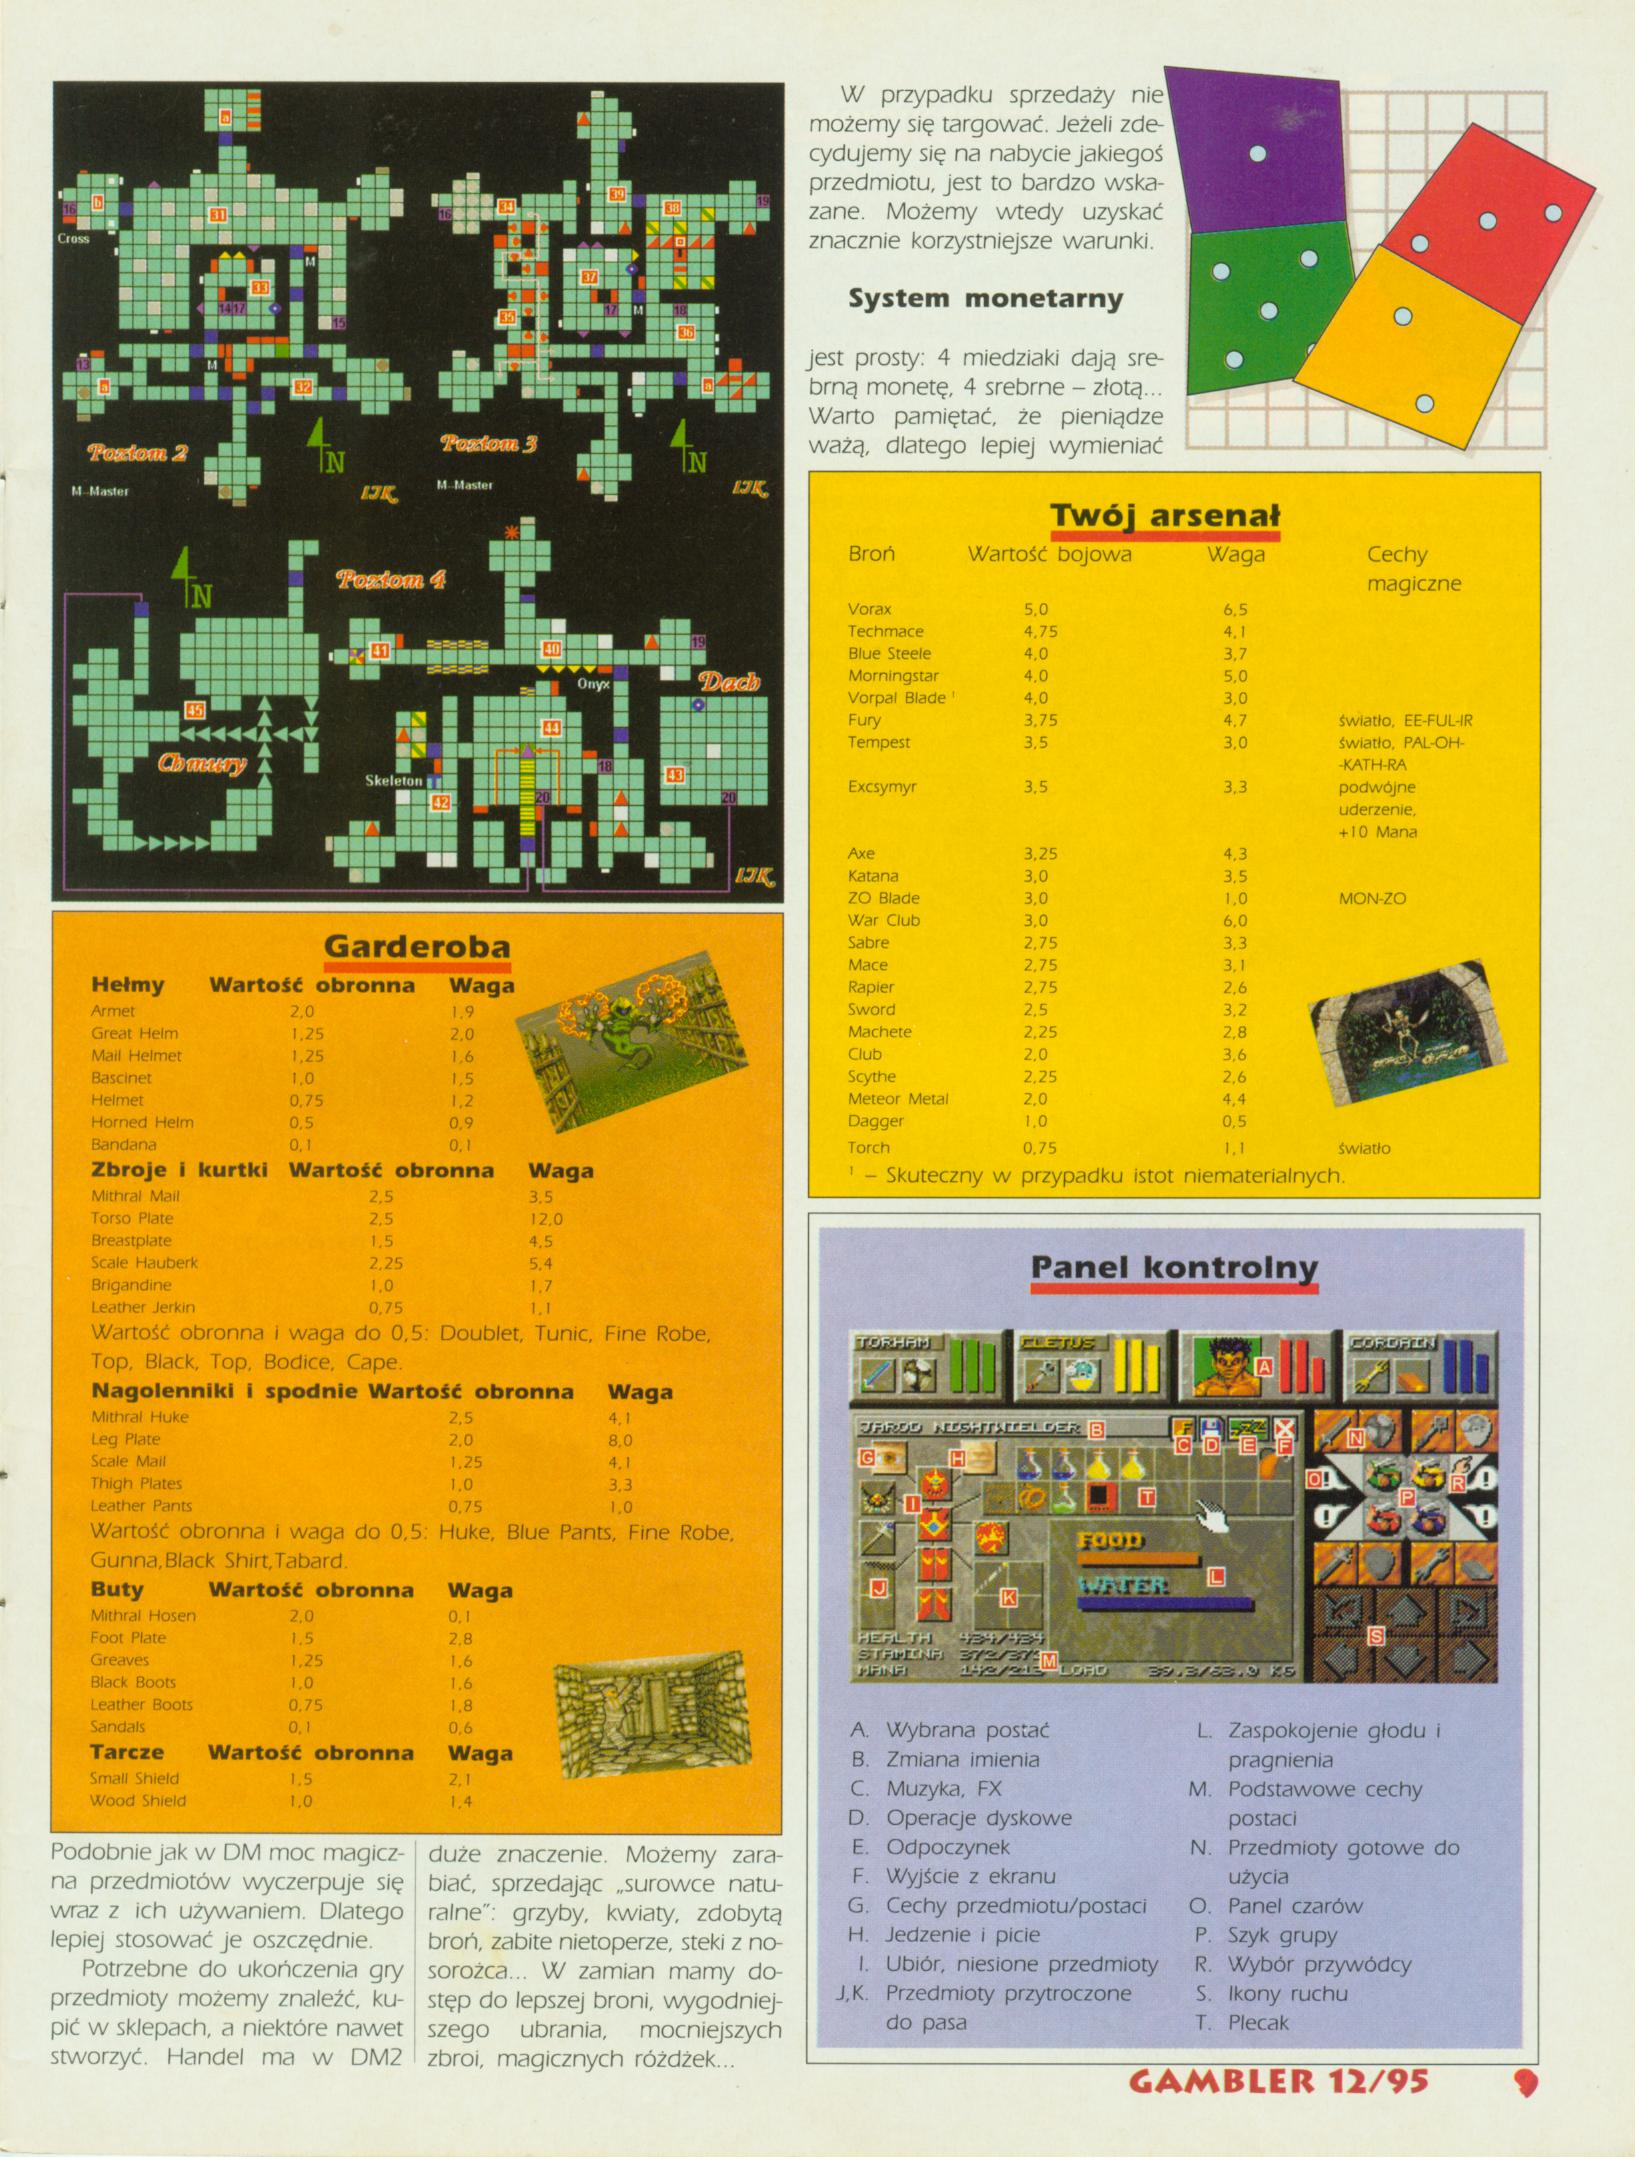 Dungeon Master II Guide published in Polish magazine 'Gambler', December 1995, Page 9